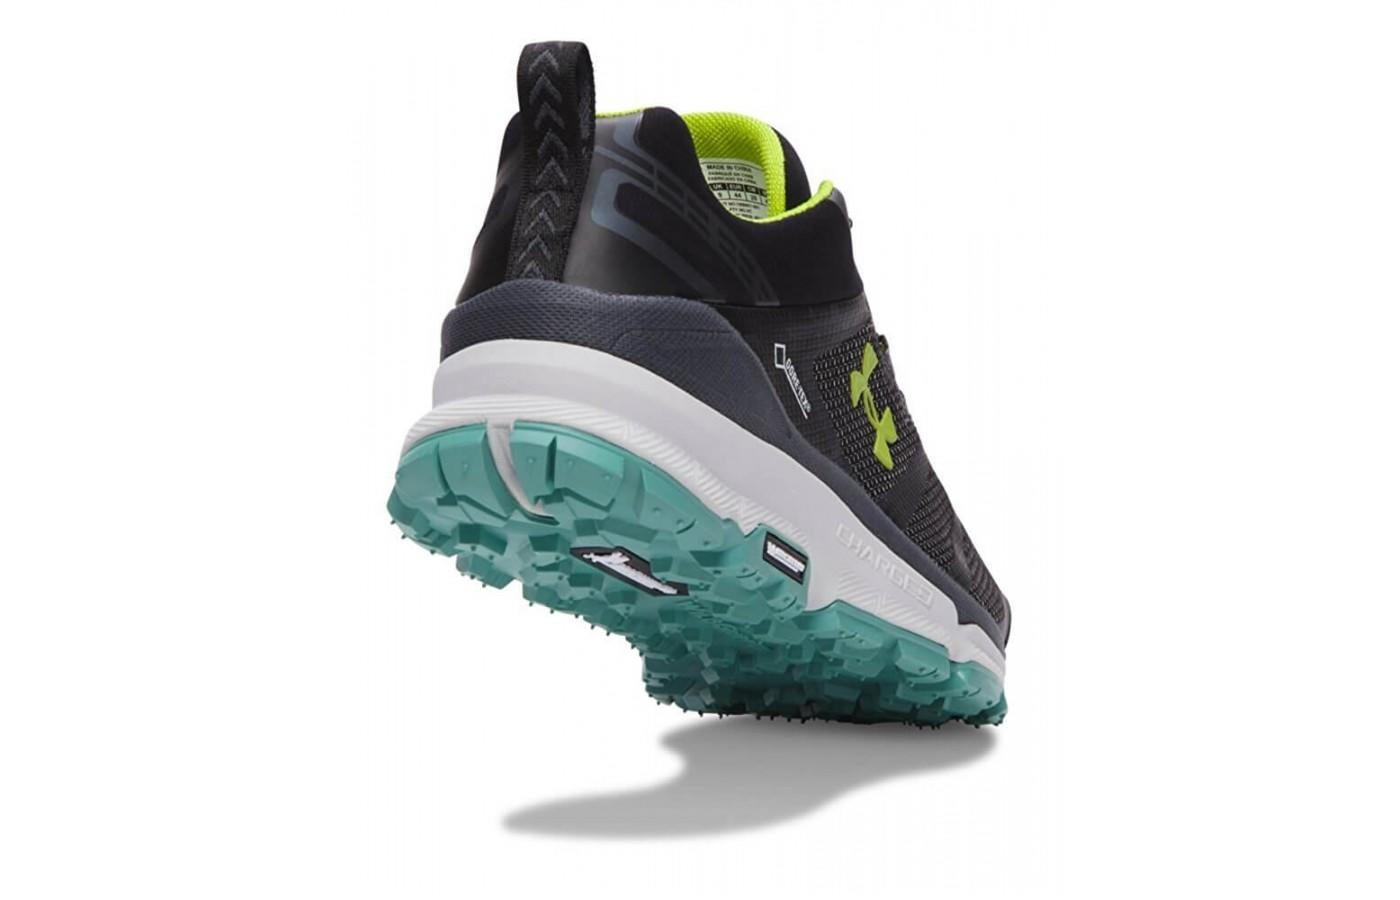 Under Armour Verge Low GTX heel and tread view